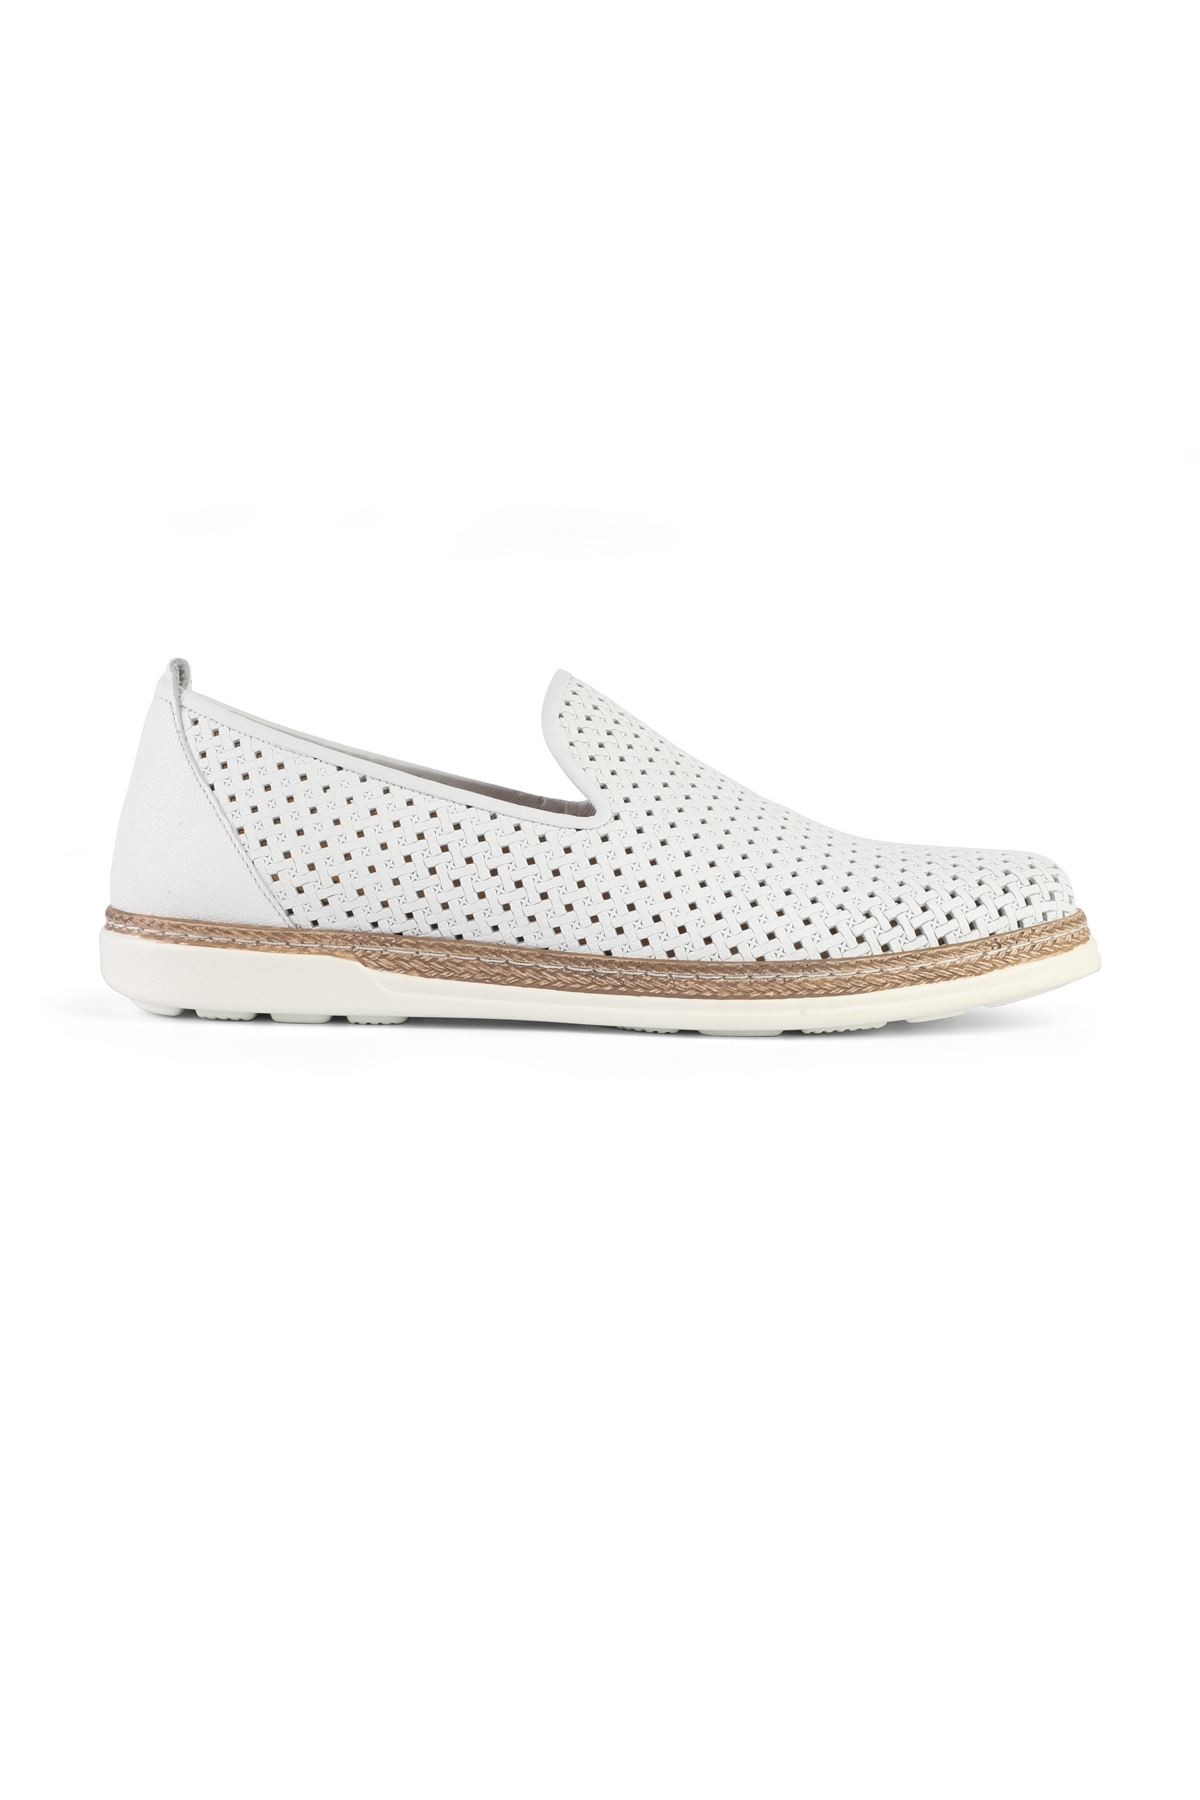 Libero 3397 White Loafer Shoes